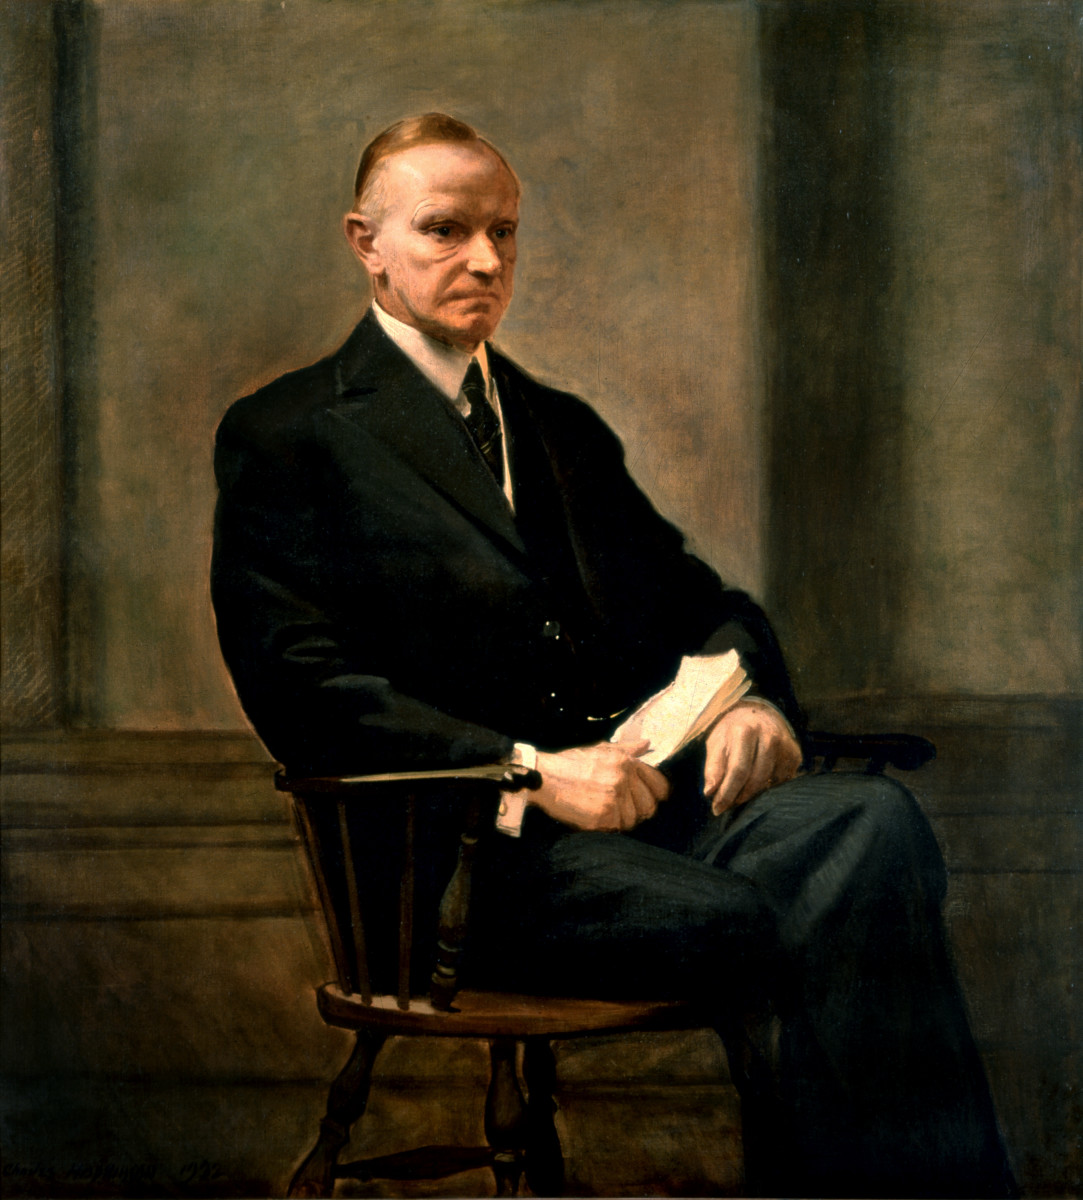 #30. Calvin Coolidge